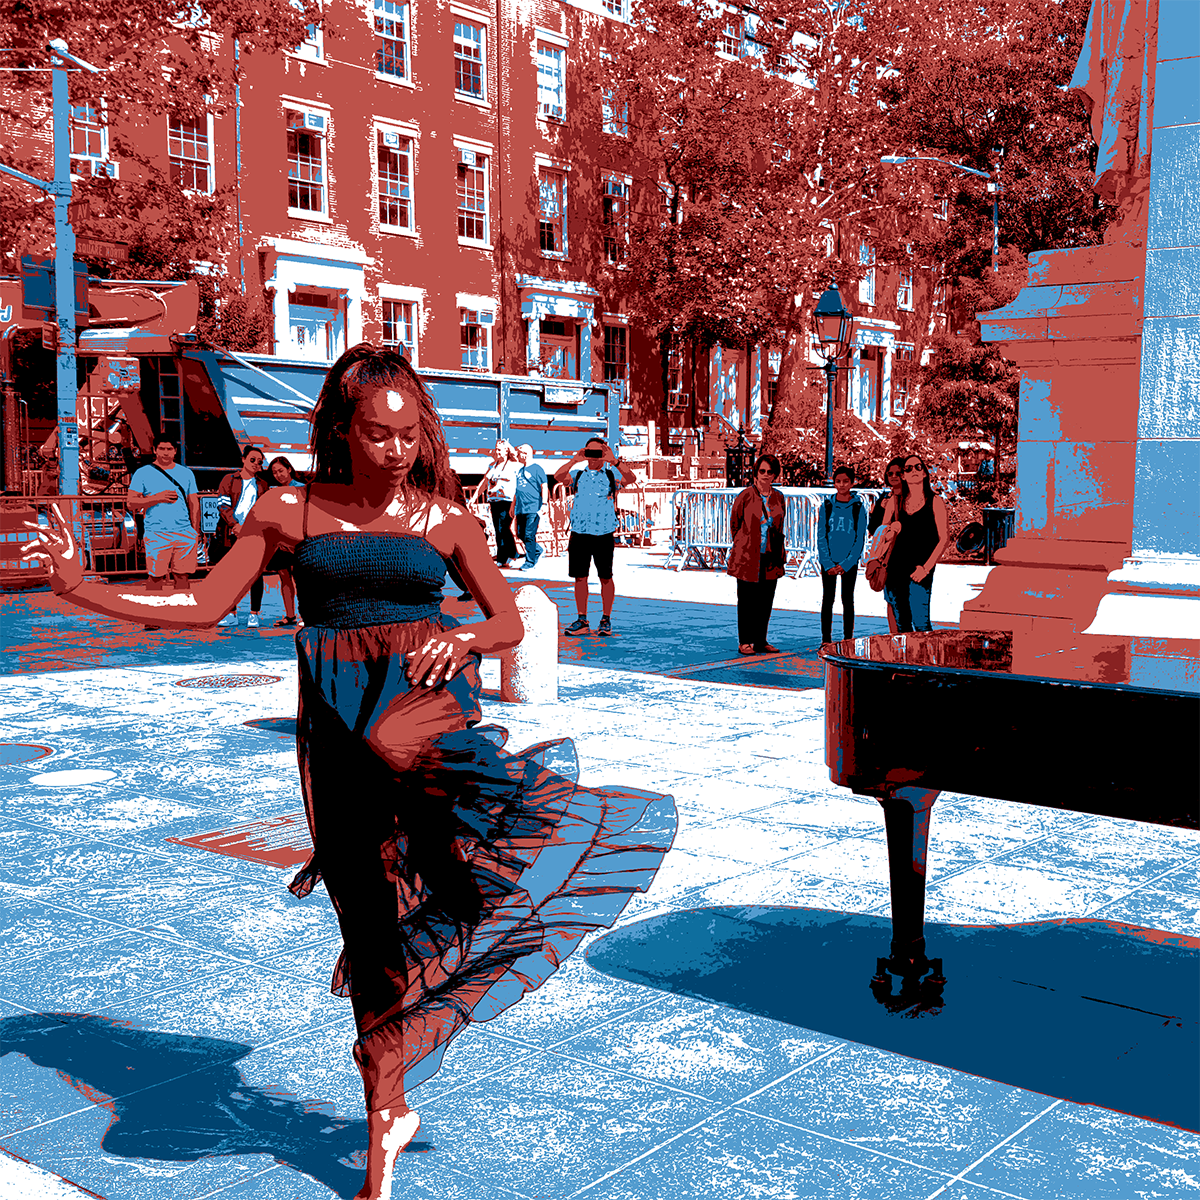 Woman in dress dancing next to a piano.